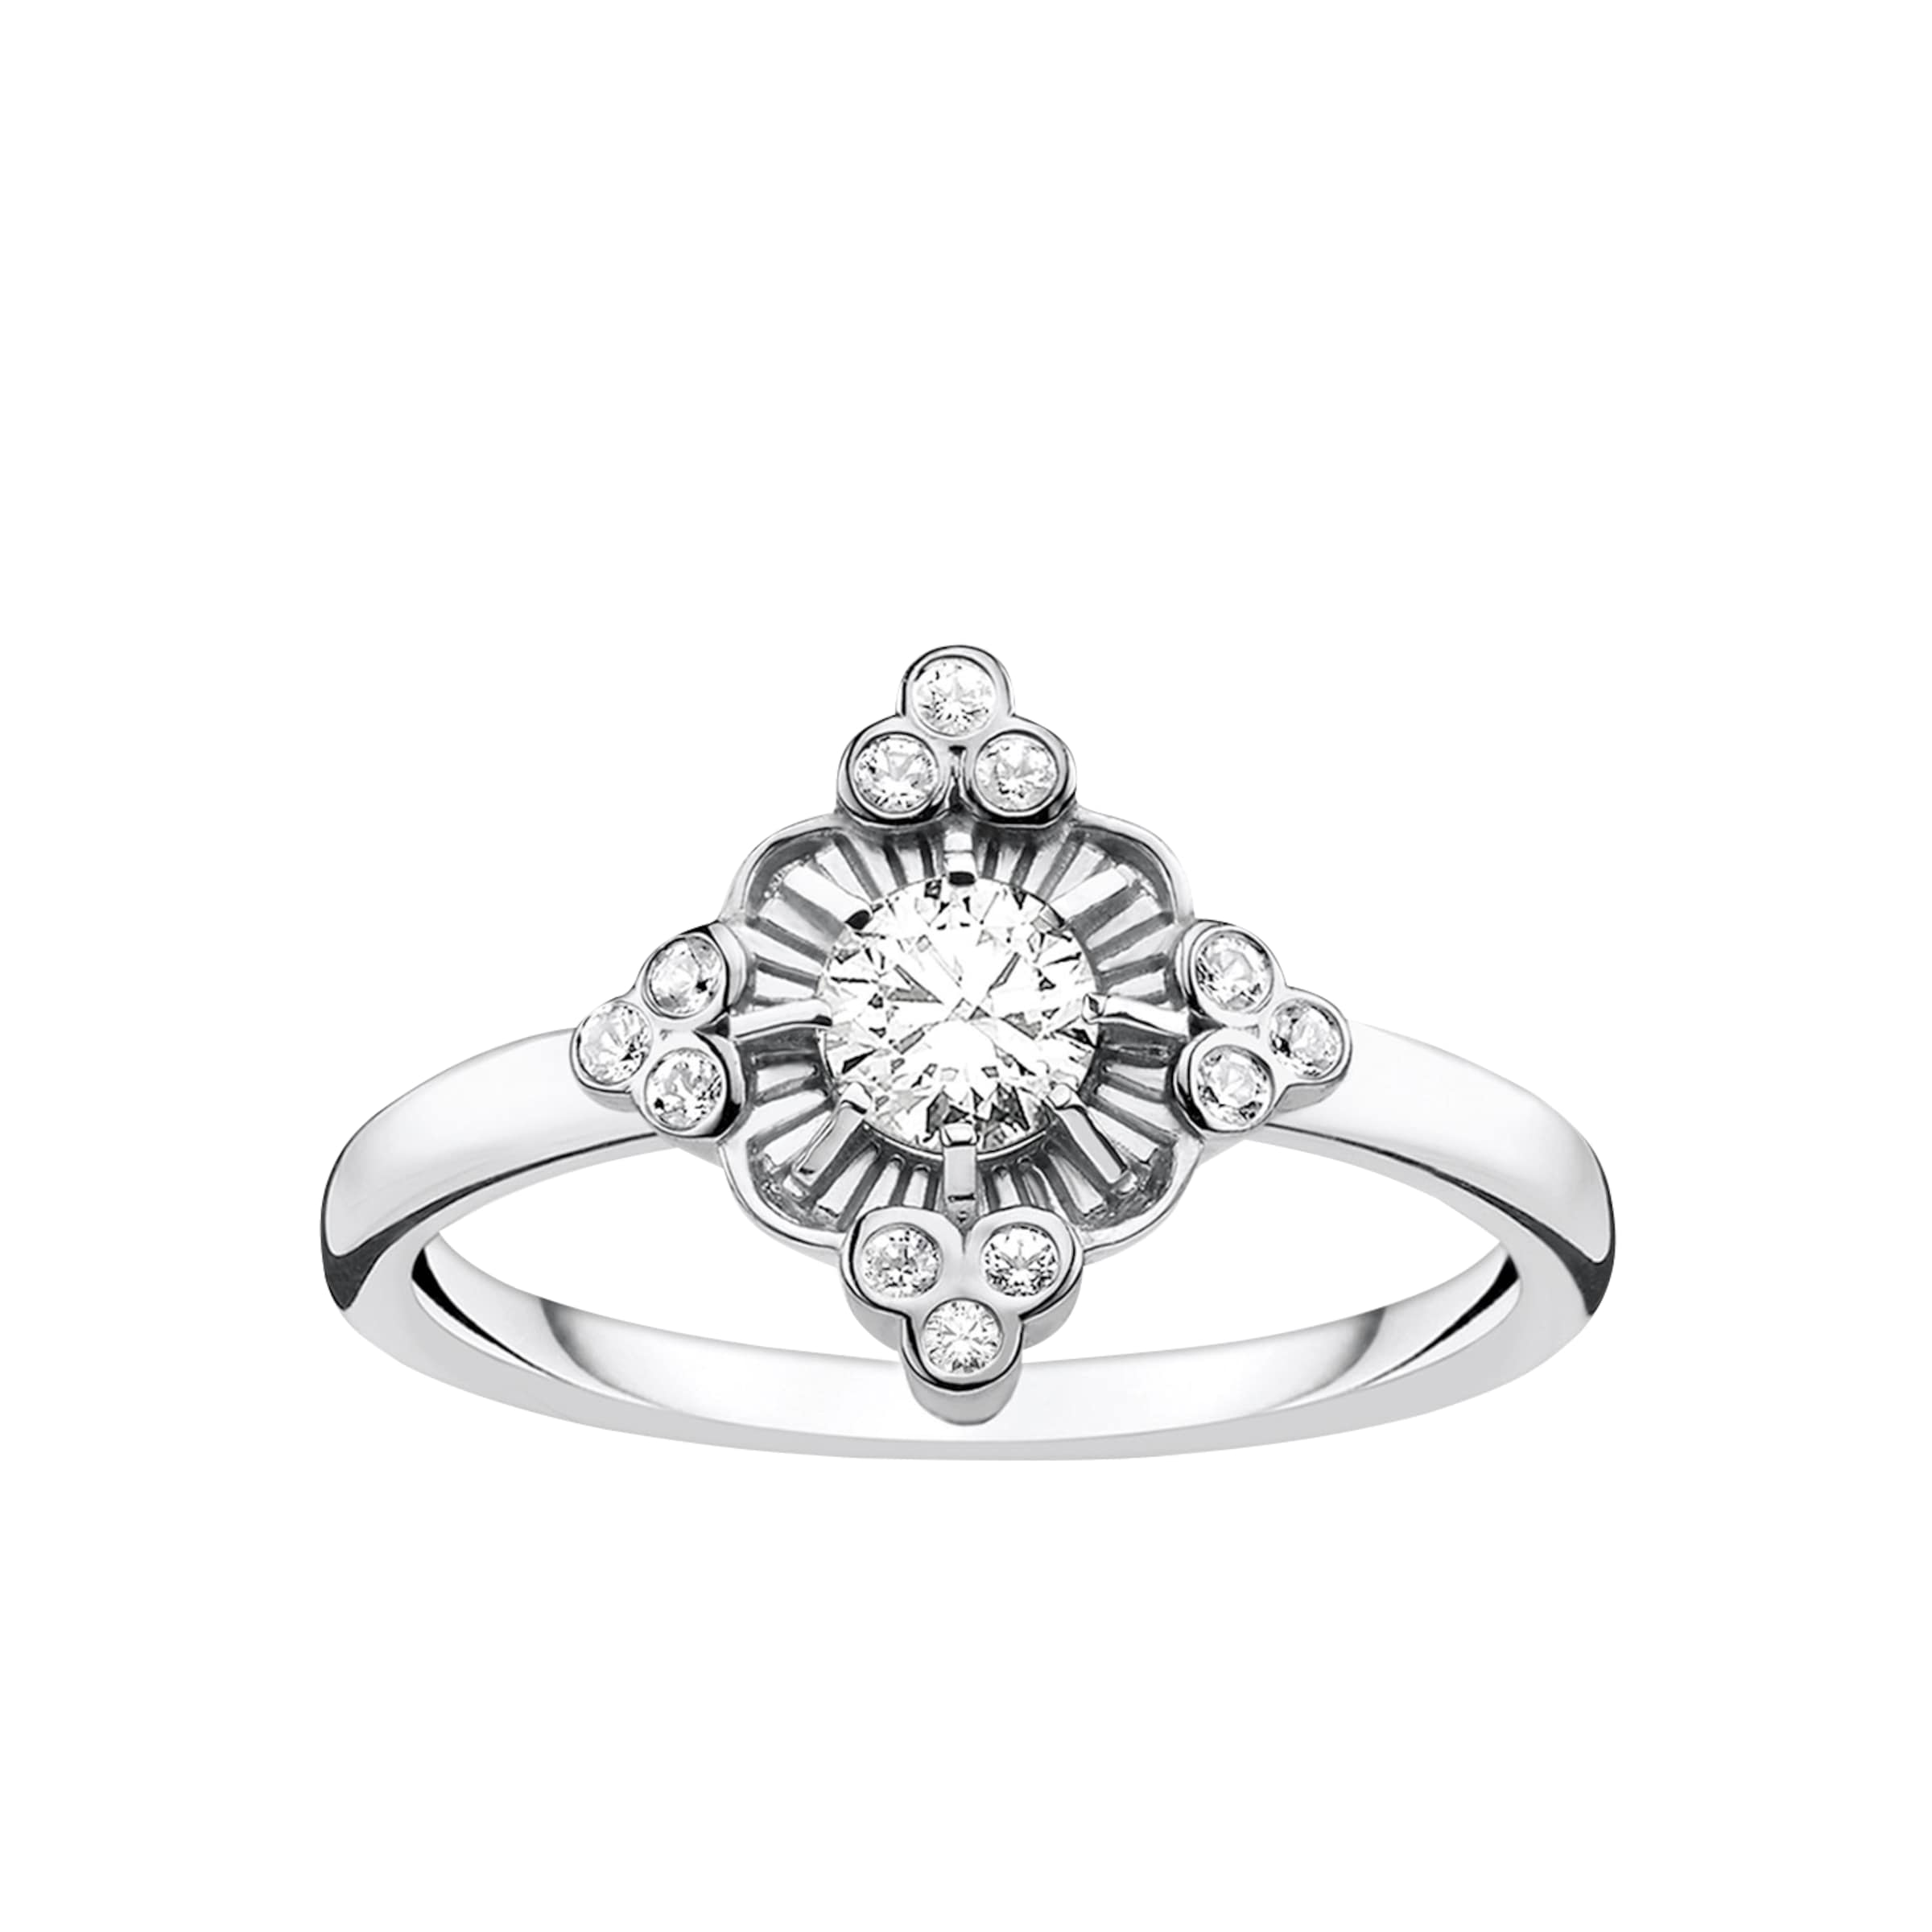 Thomas Sabo Ring 'Royalty Weiss' in silber